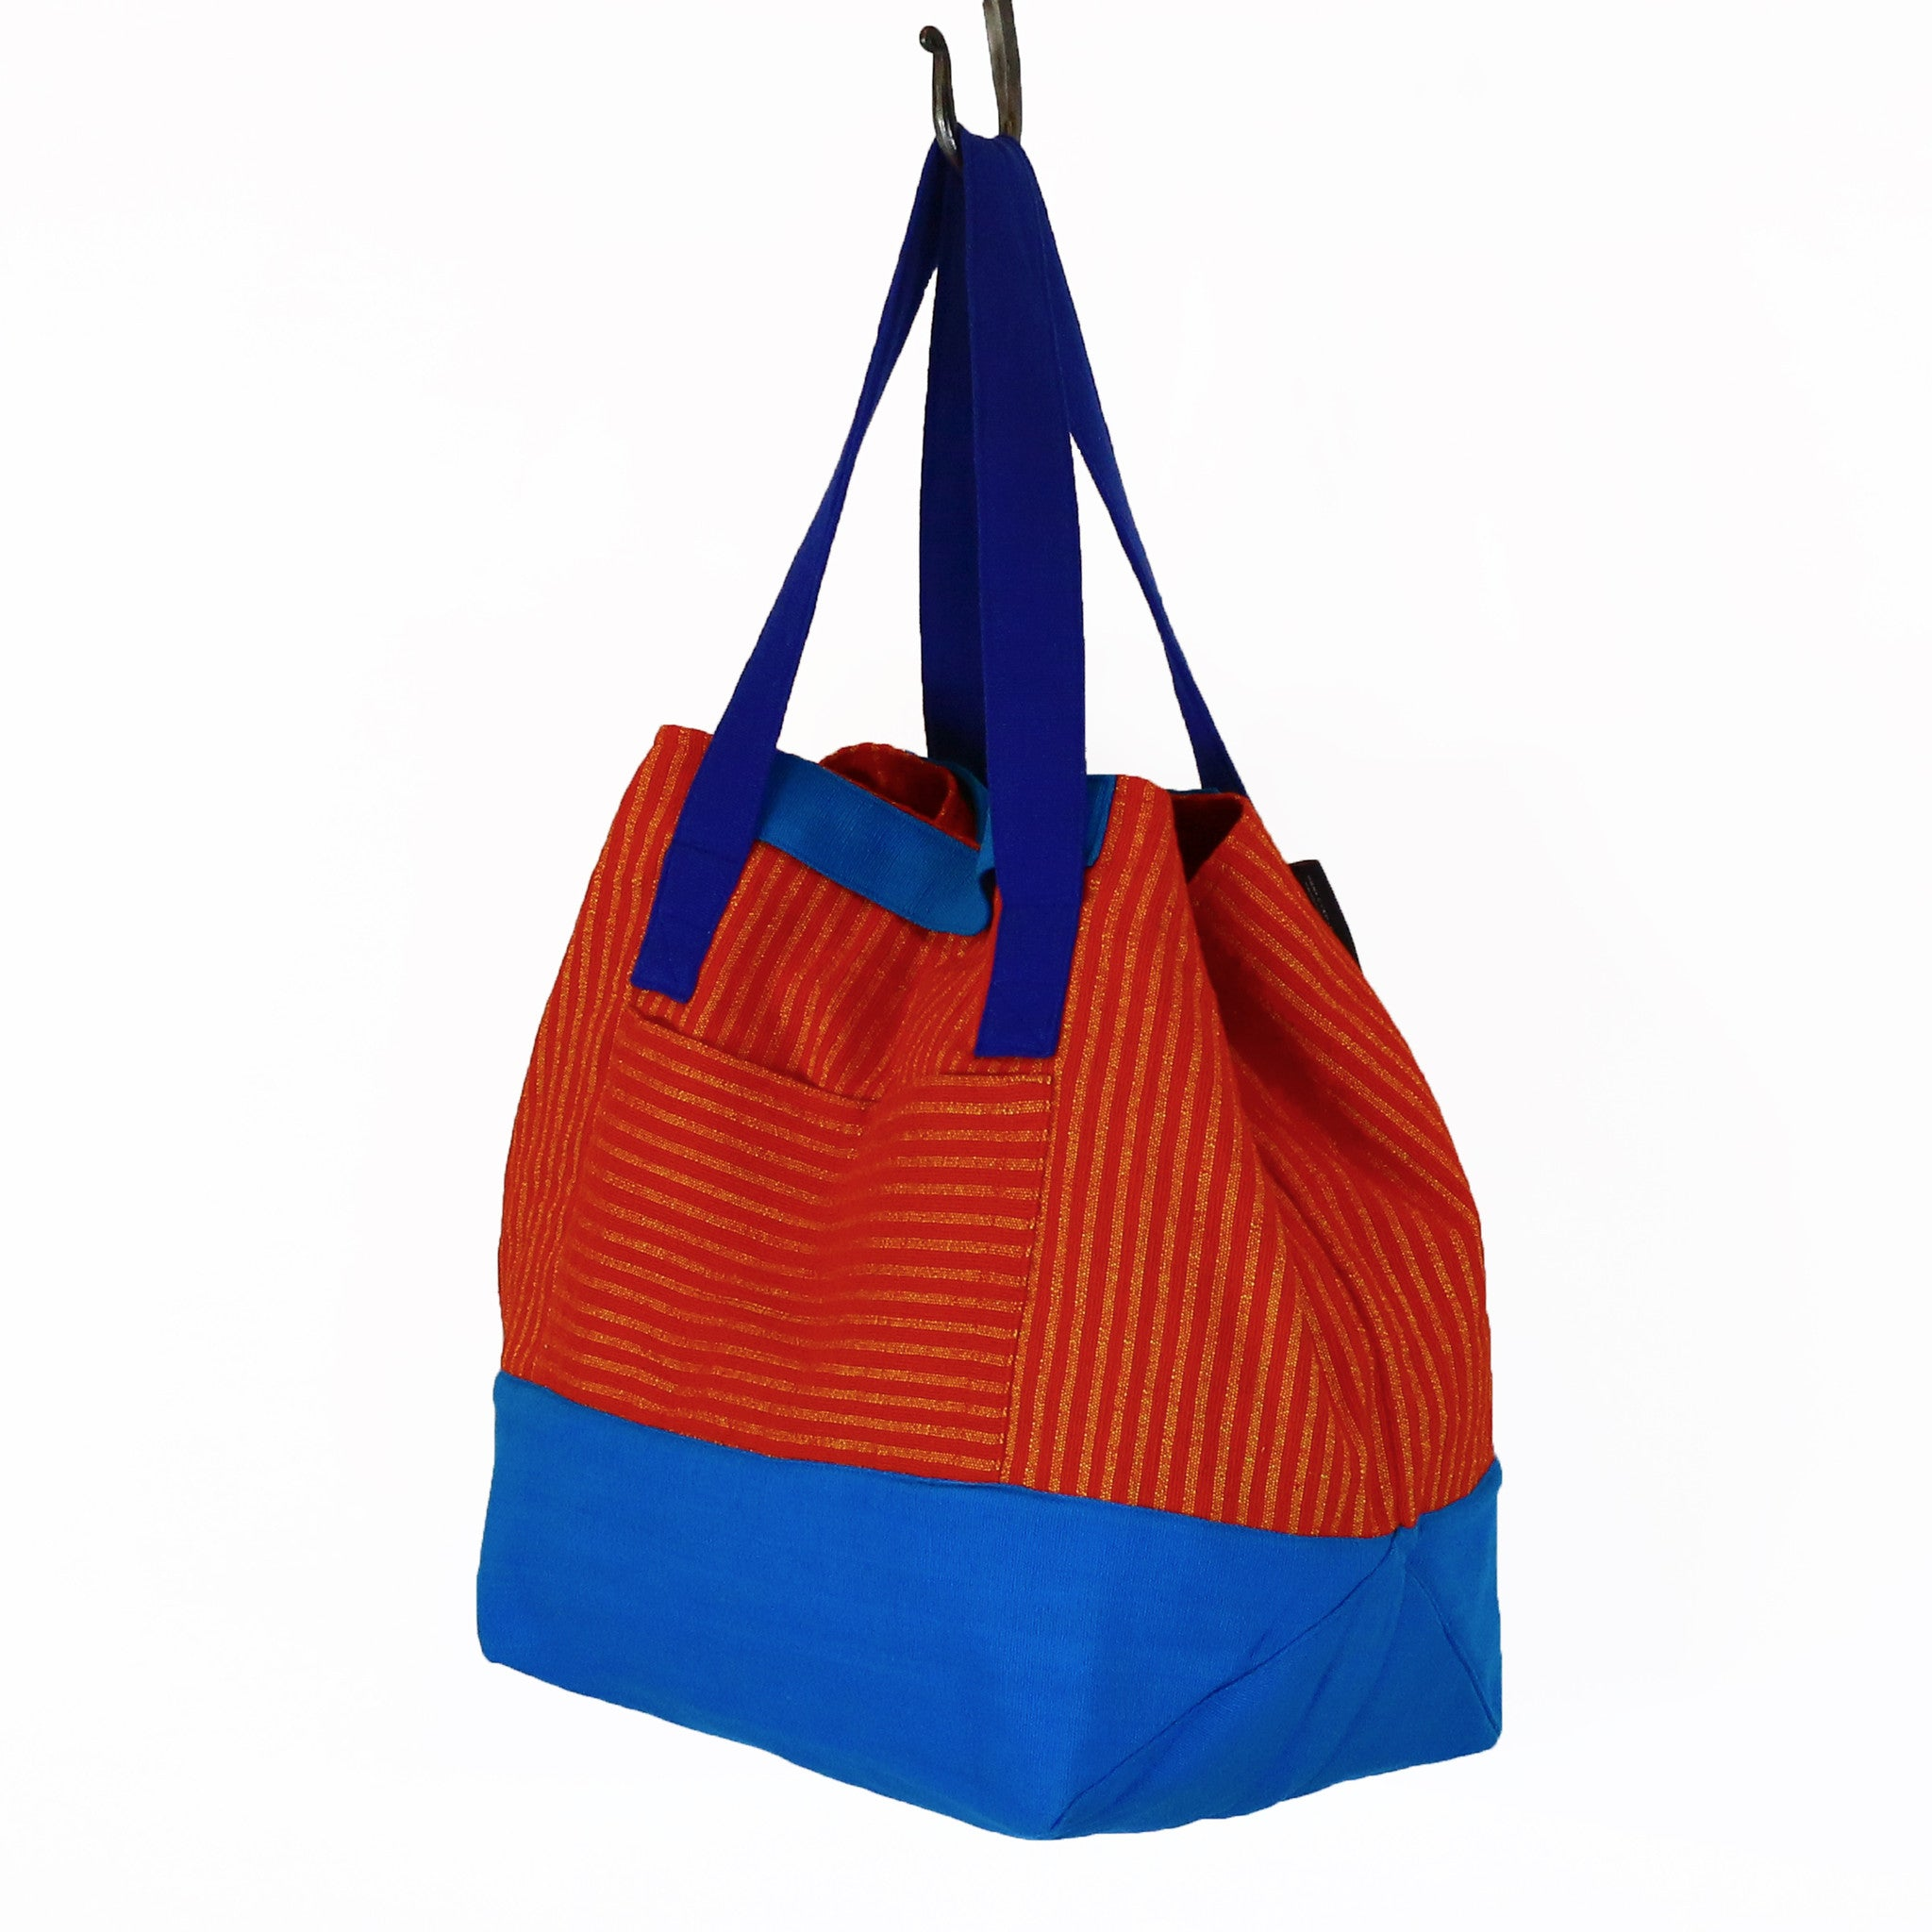 The Essential Weekender – Bell Pepper fabric shown